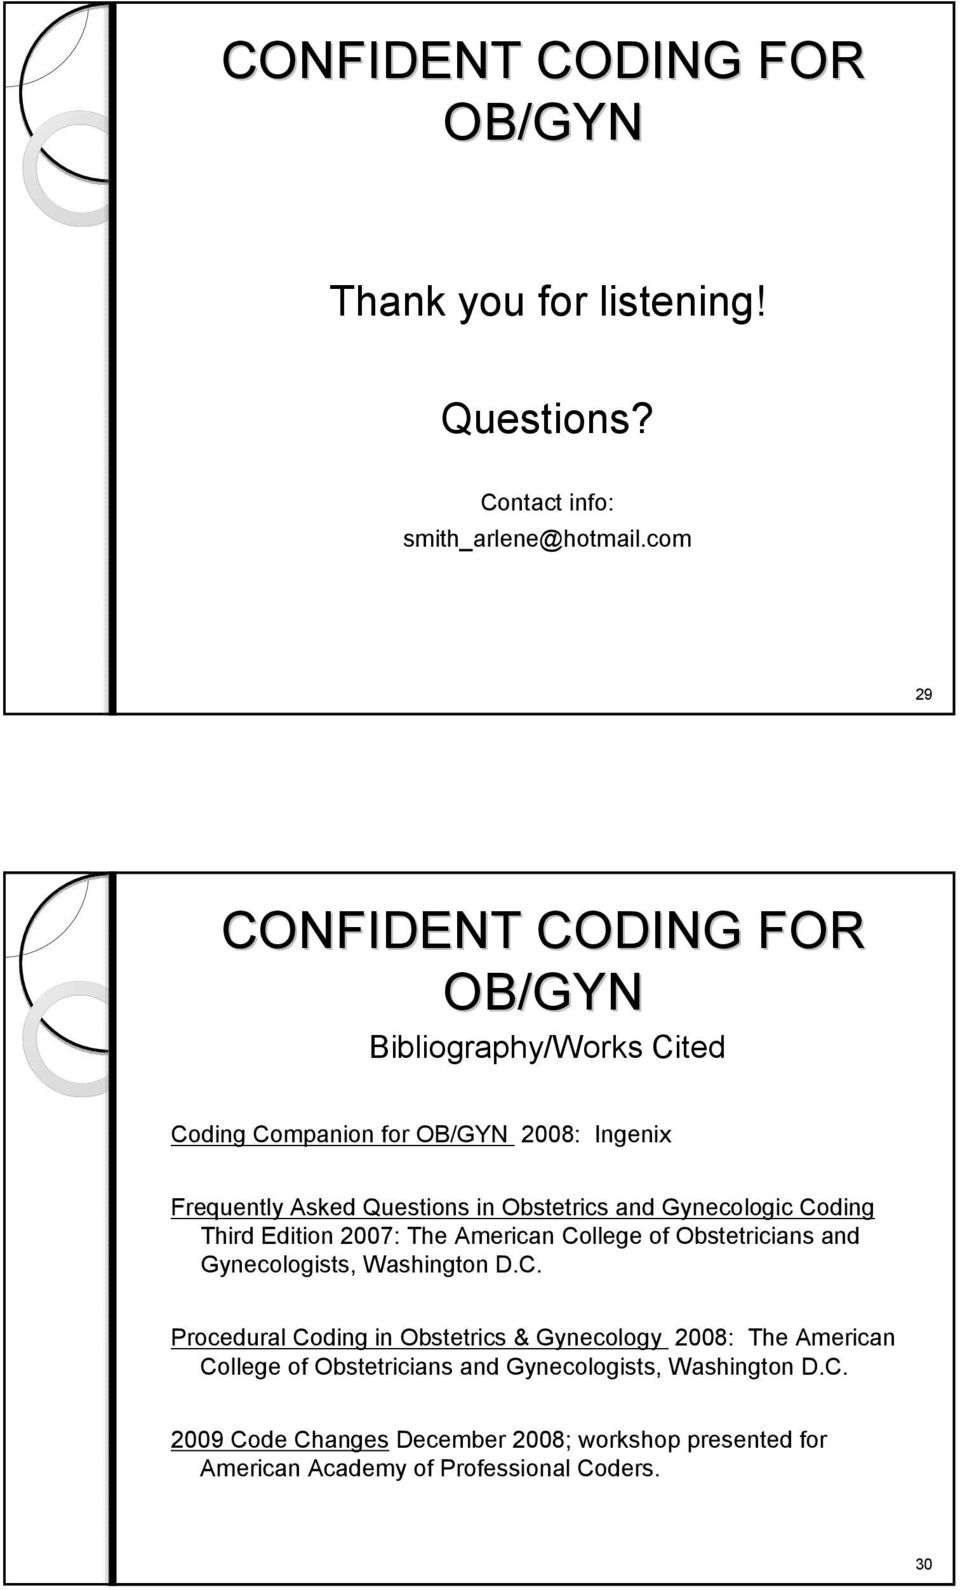 Coding Third Edition 2007: The American College of Obstetricians and Gynecologists, Washington D.C. Procedural Coding in Obstetrics & Gynecology 2008: The American College of Obstetricians and Gynecologists, Washington D.